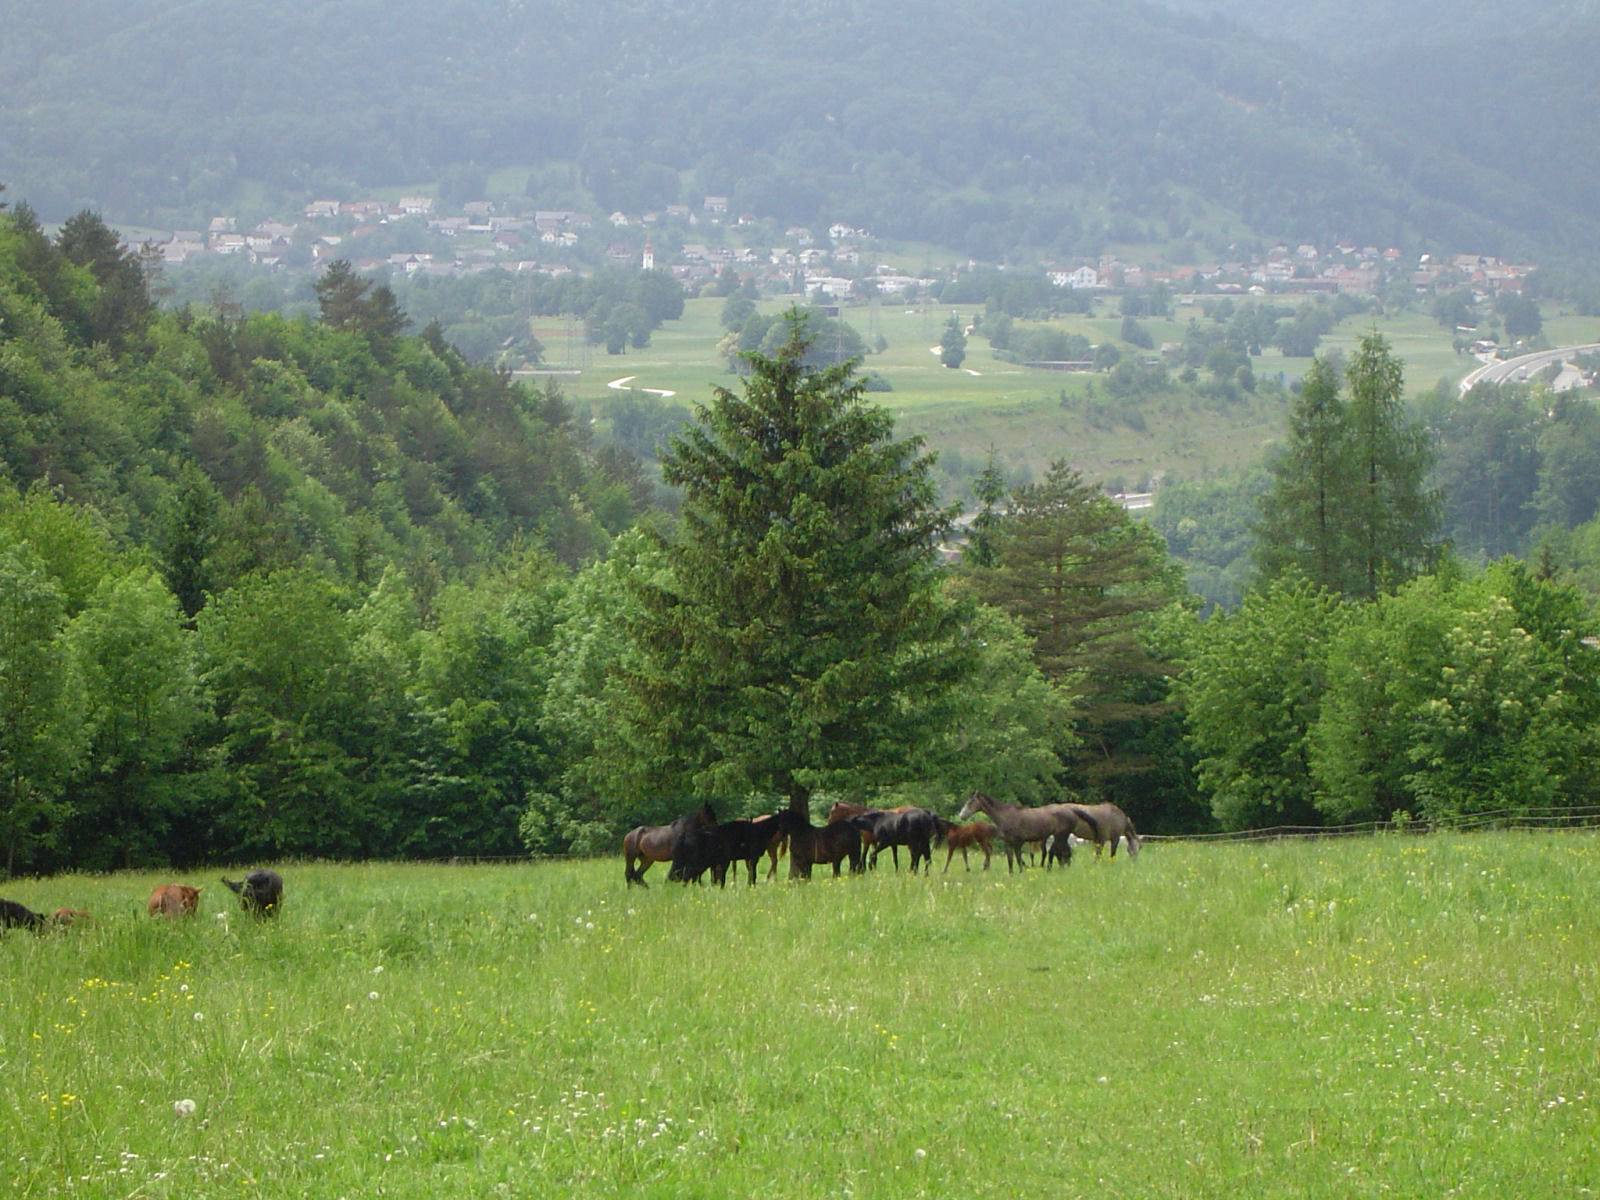 A group of horses on a pasture in the Gorenjska region of Slovenia